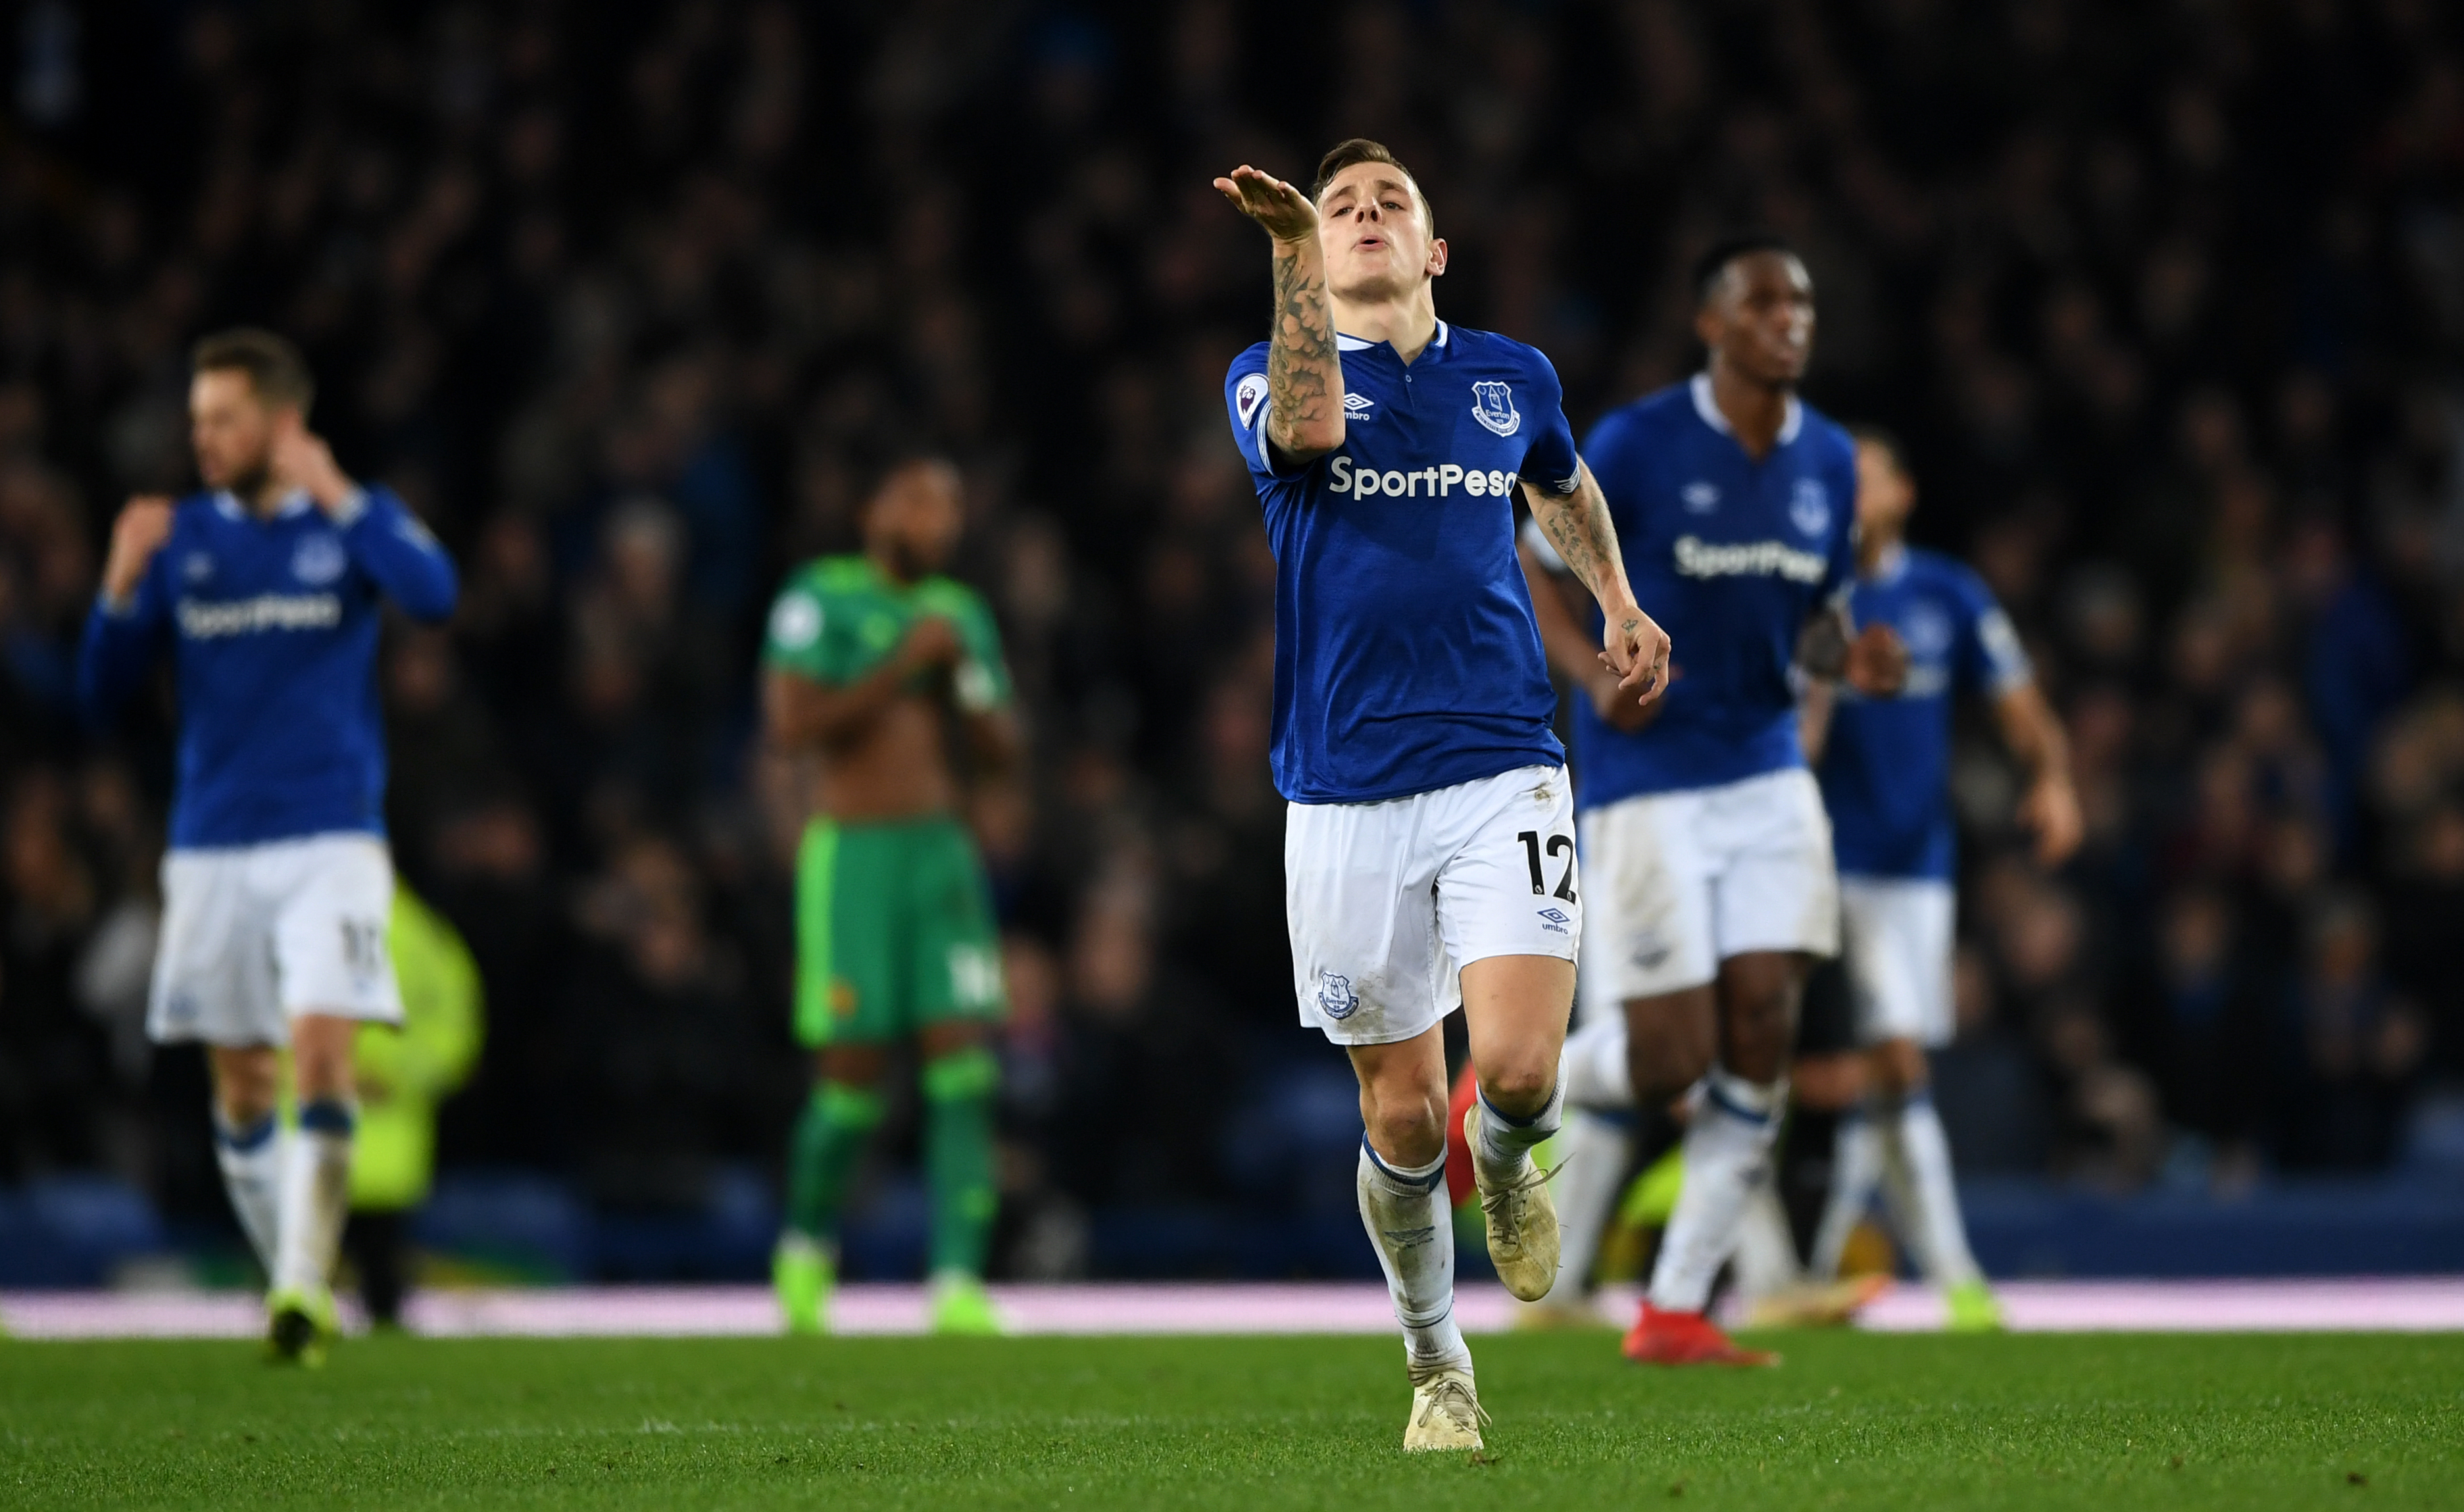 Everton FC v Watford FC - Premier League